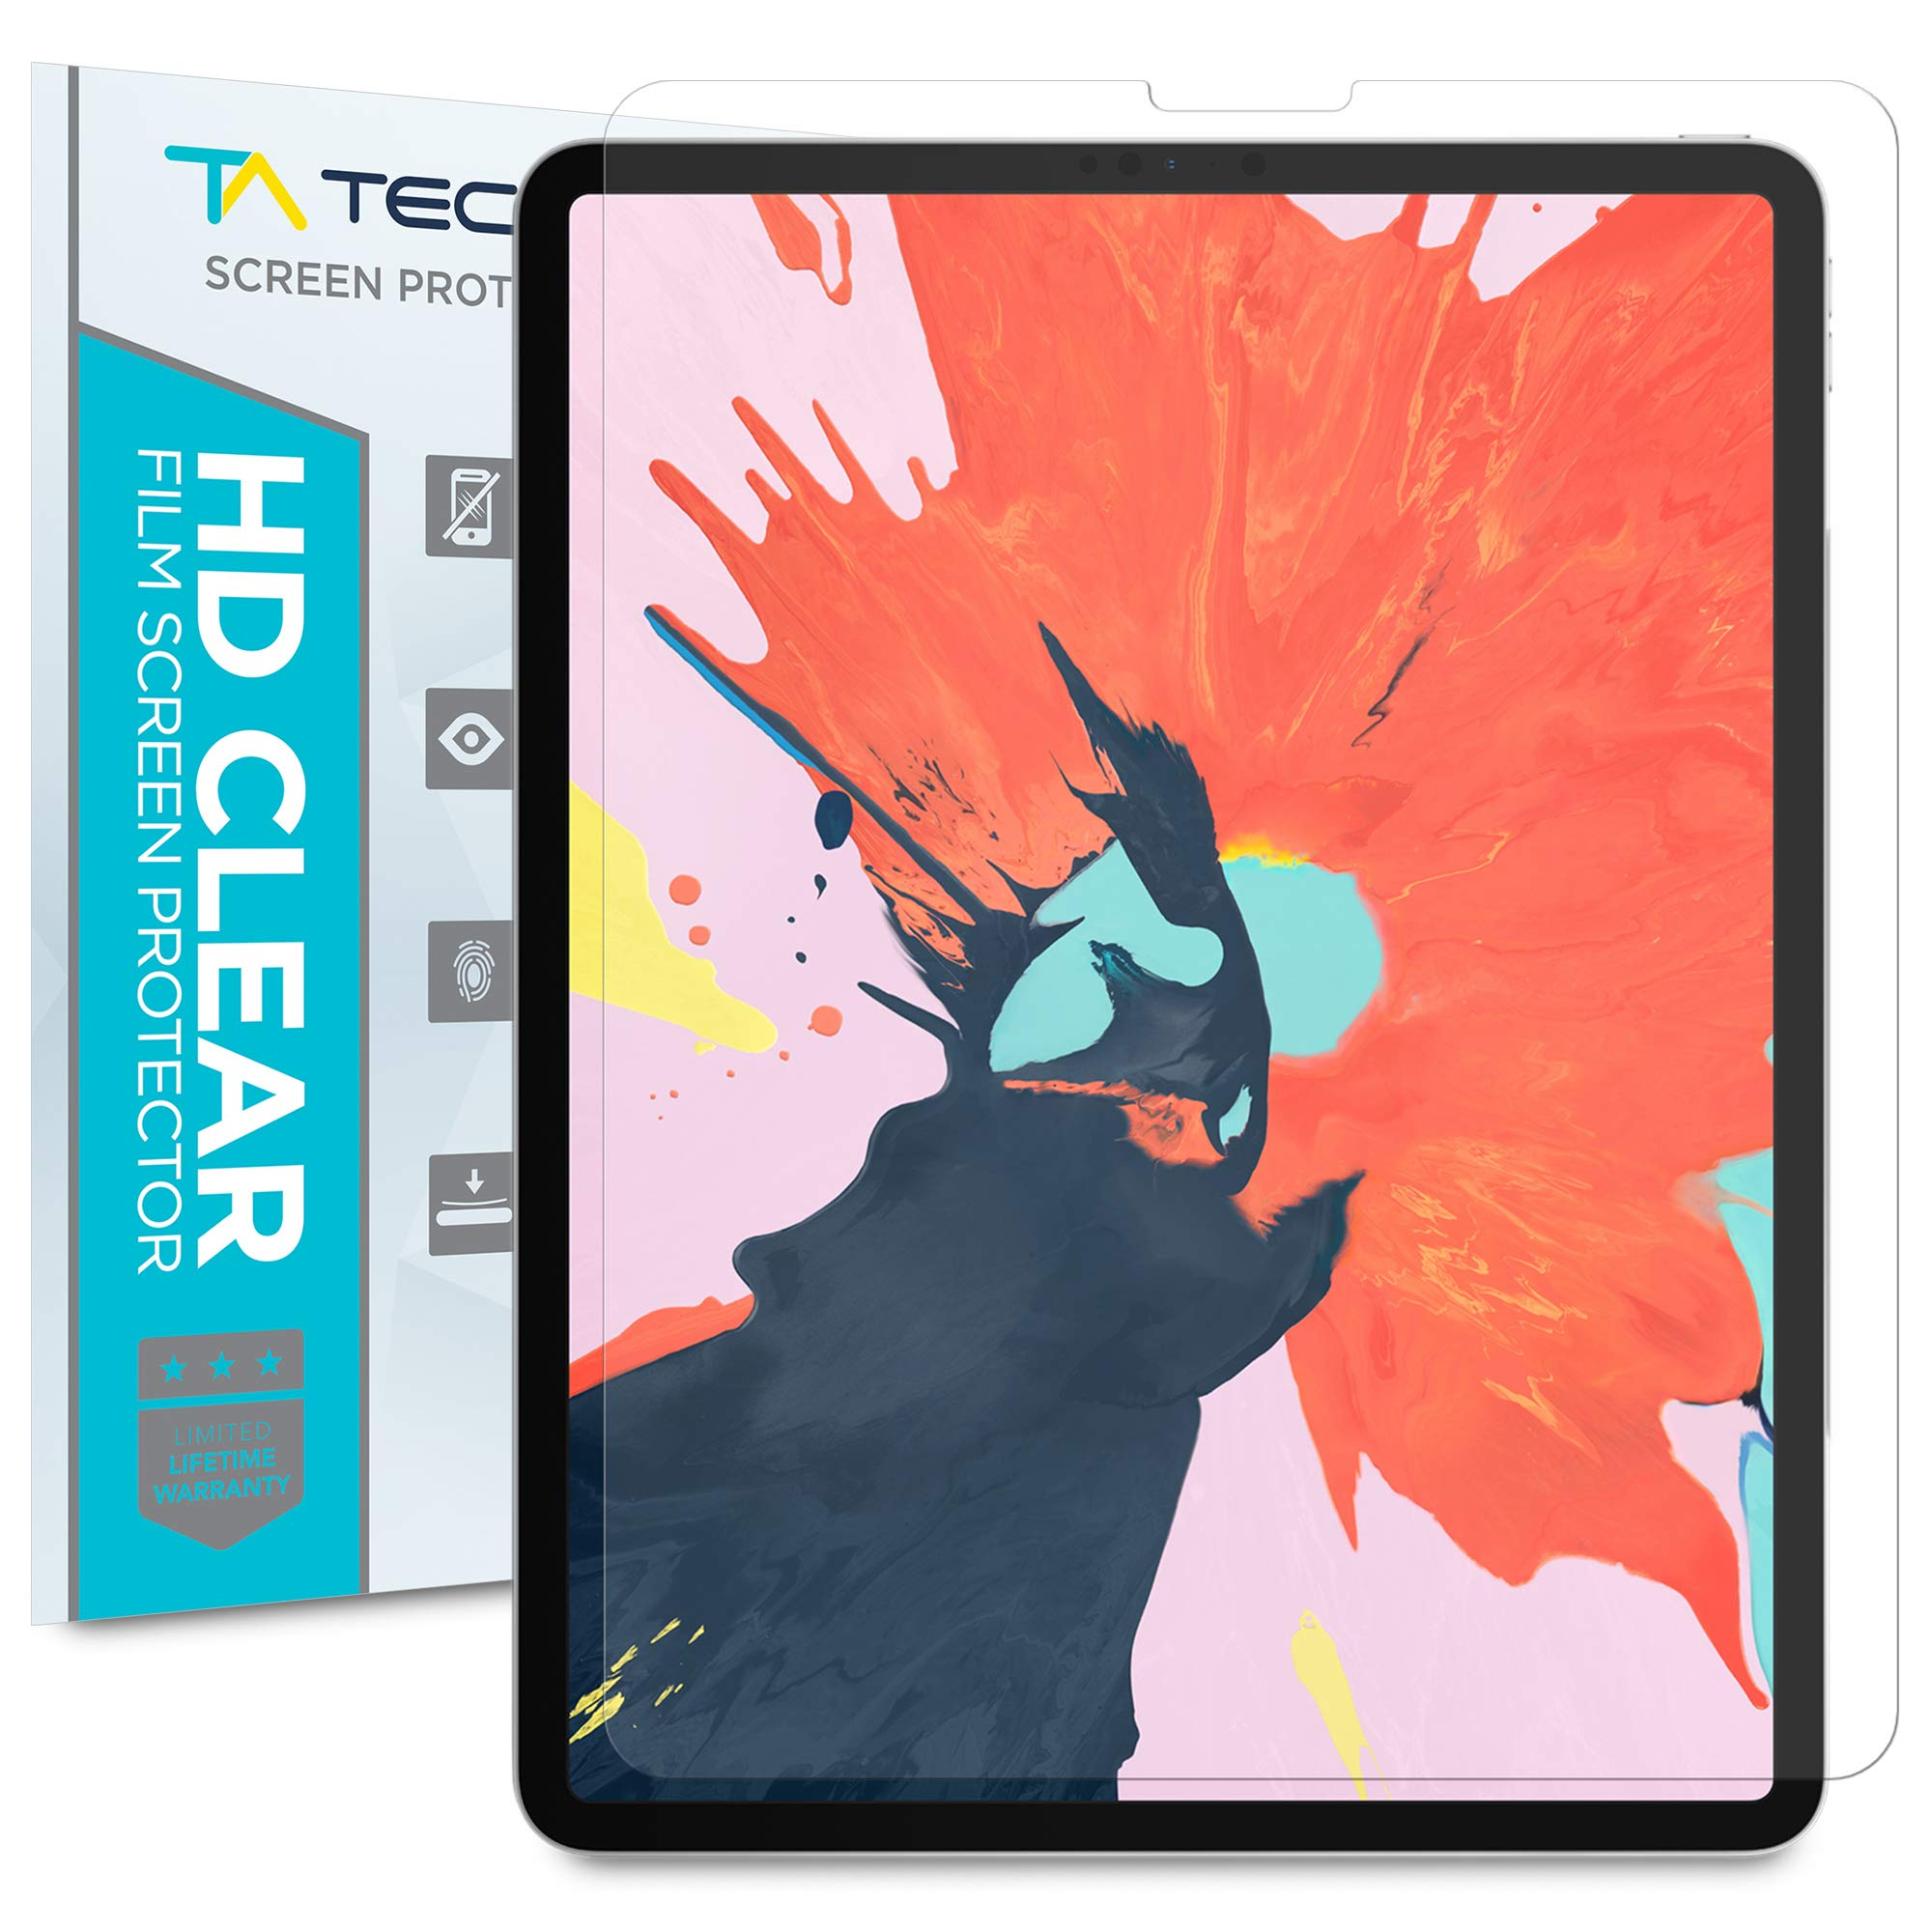 Tech Armor Anti-Glare/Anti-Fingerprint Plastic Film Screen Protector (Not Glass) Designed for Apple iPad Pro 12.9-inch (New 2020 and 2018) [2-Pack]